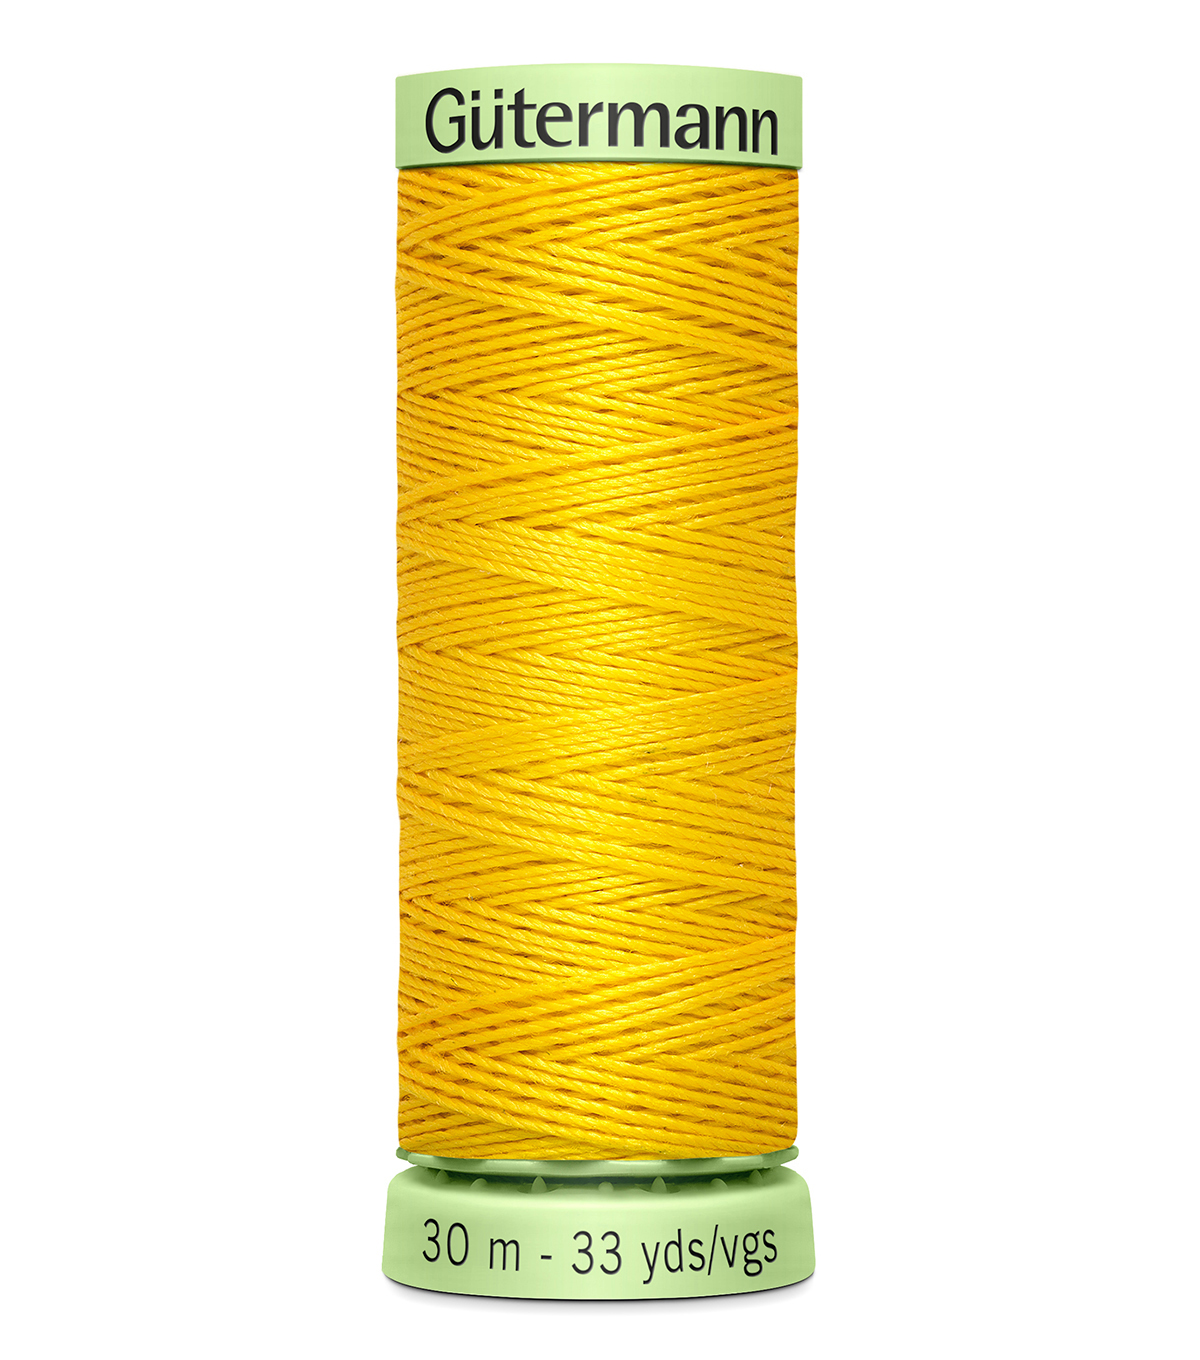 Top Stitch Heavy Duty Thread 33 Yards-, 850 Goldenrod